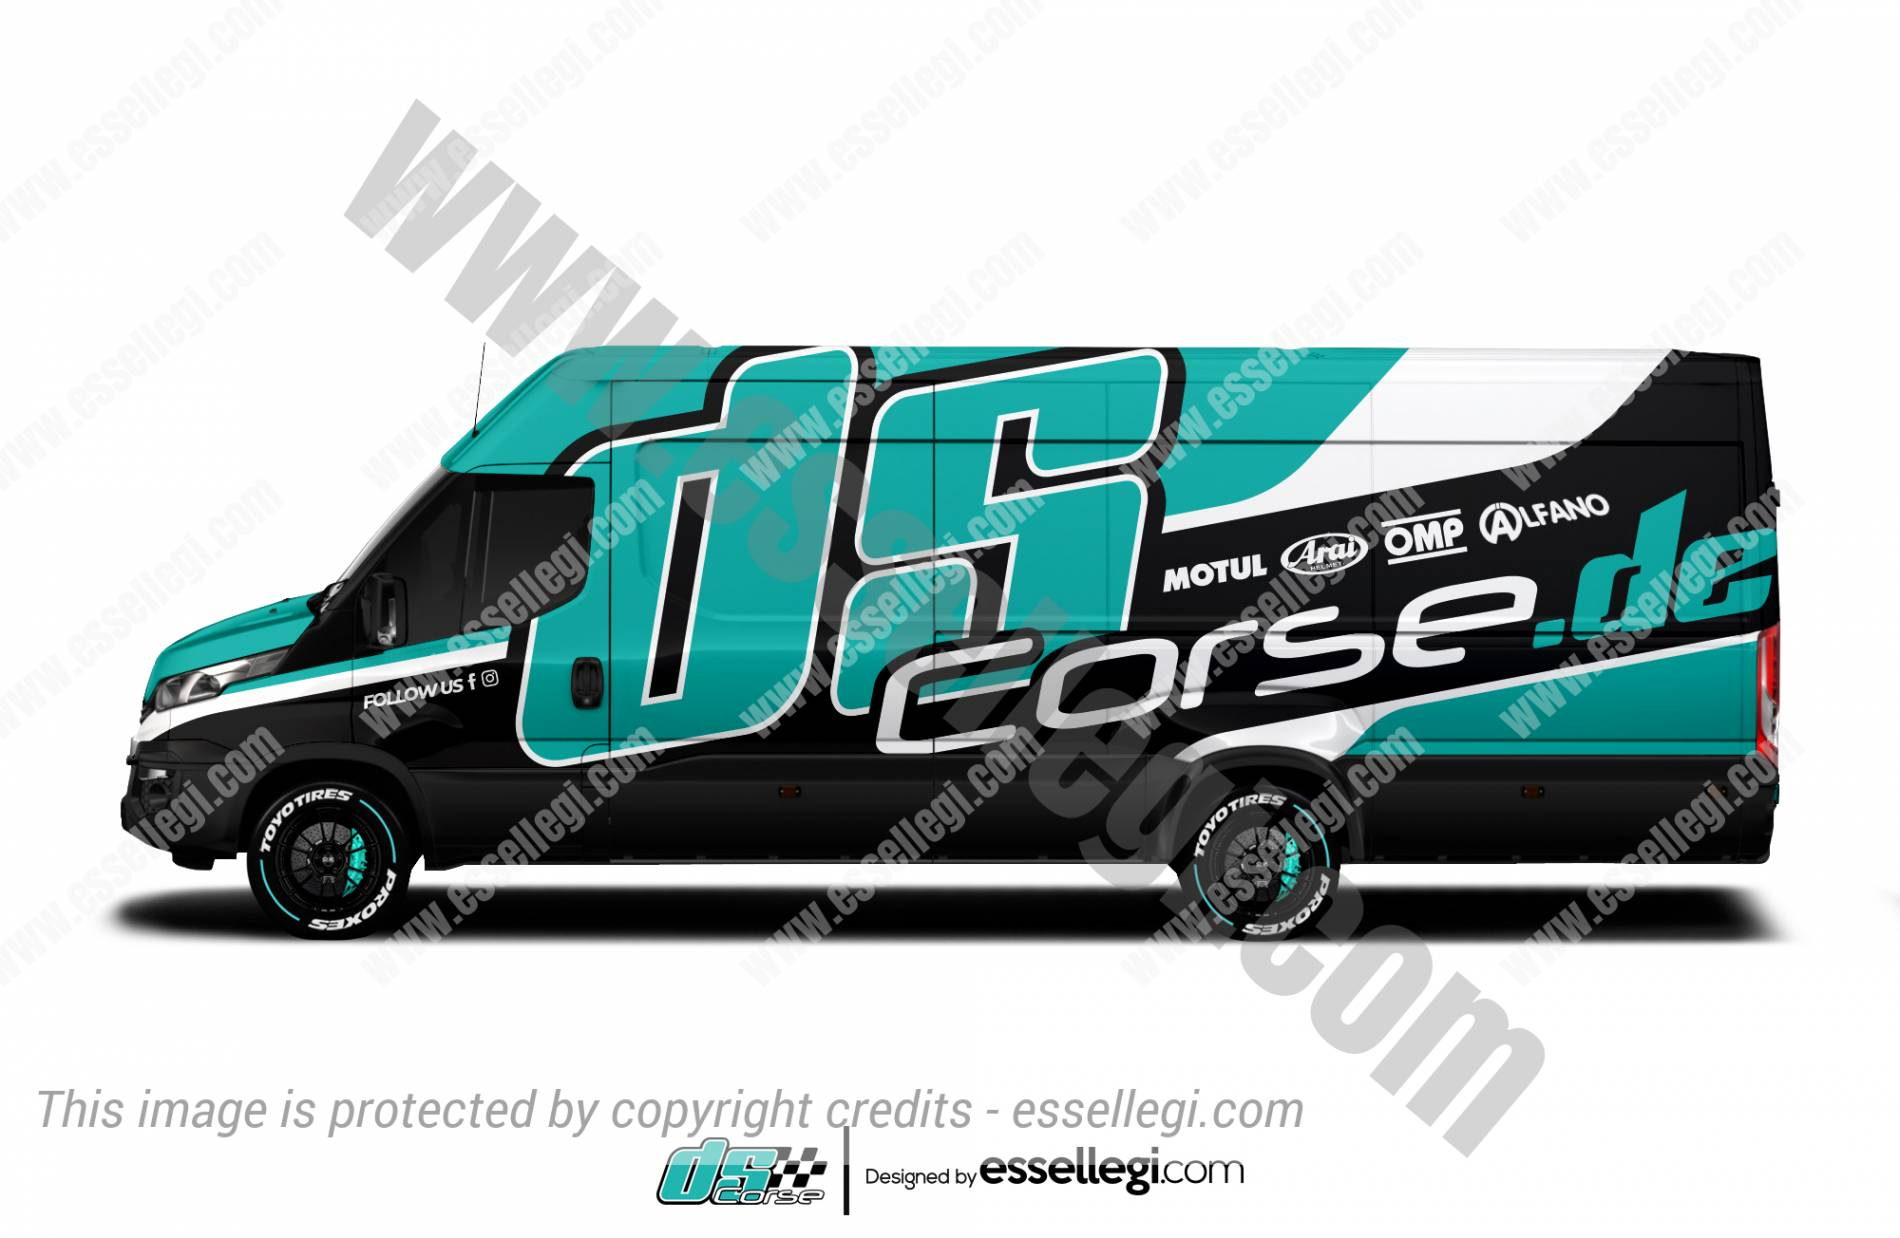 DS CORSE | VAN WRAP DESIGN 🇩🇪